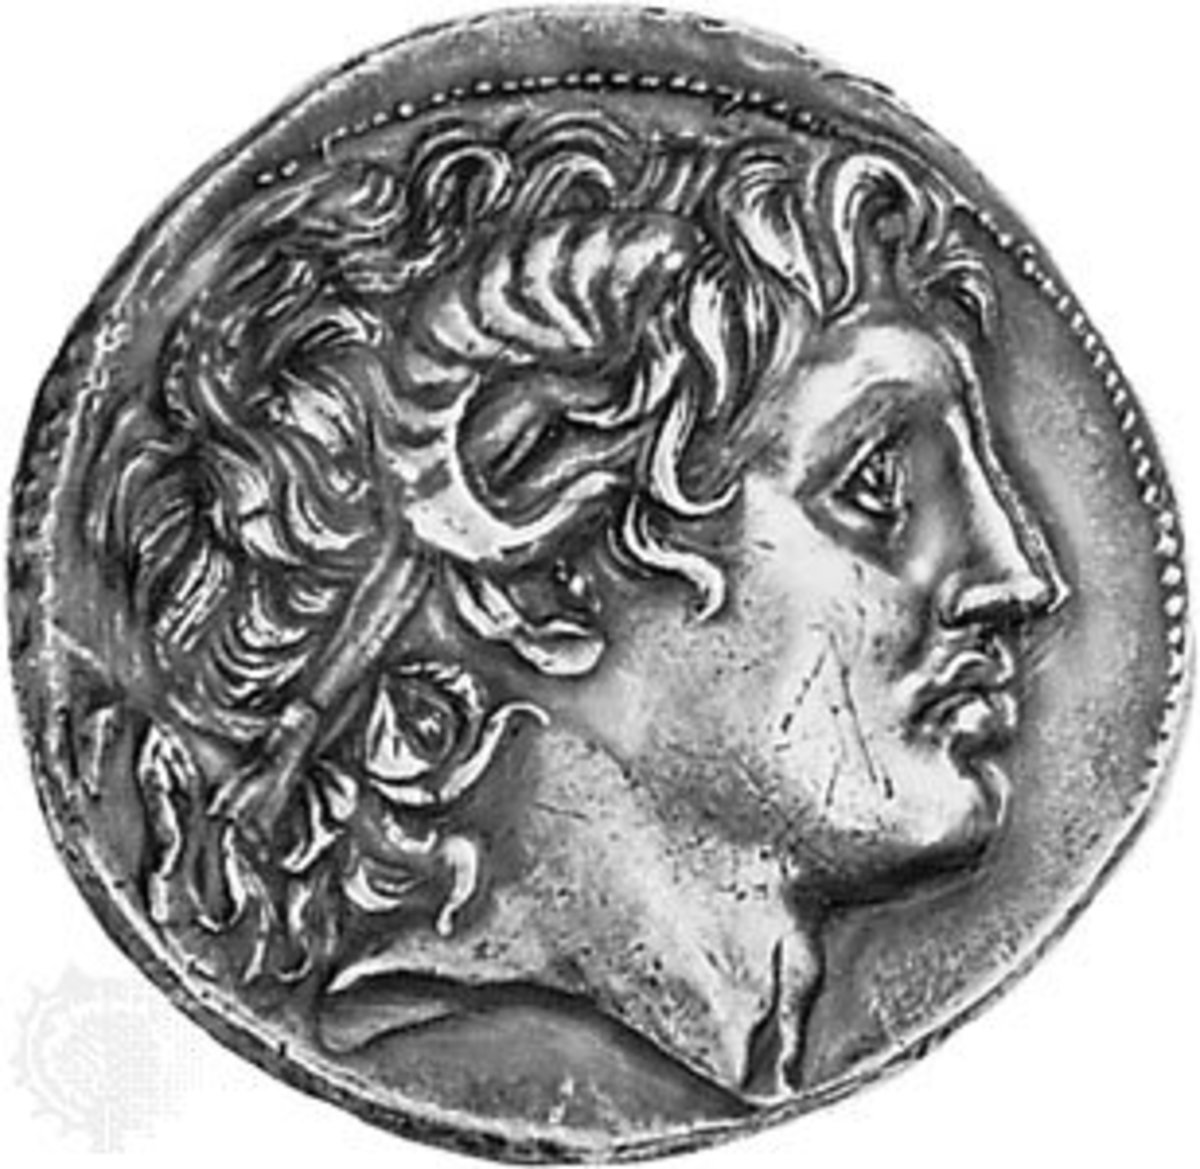 Alexander the Great on a coin